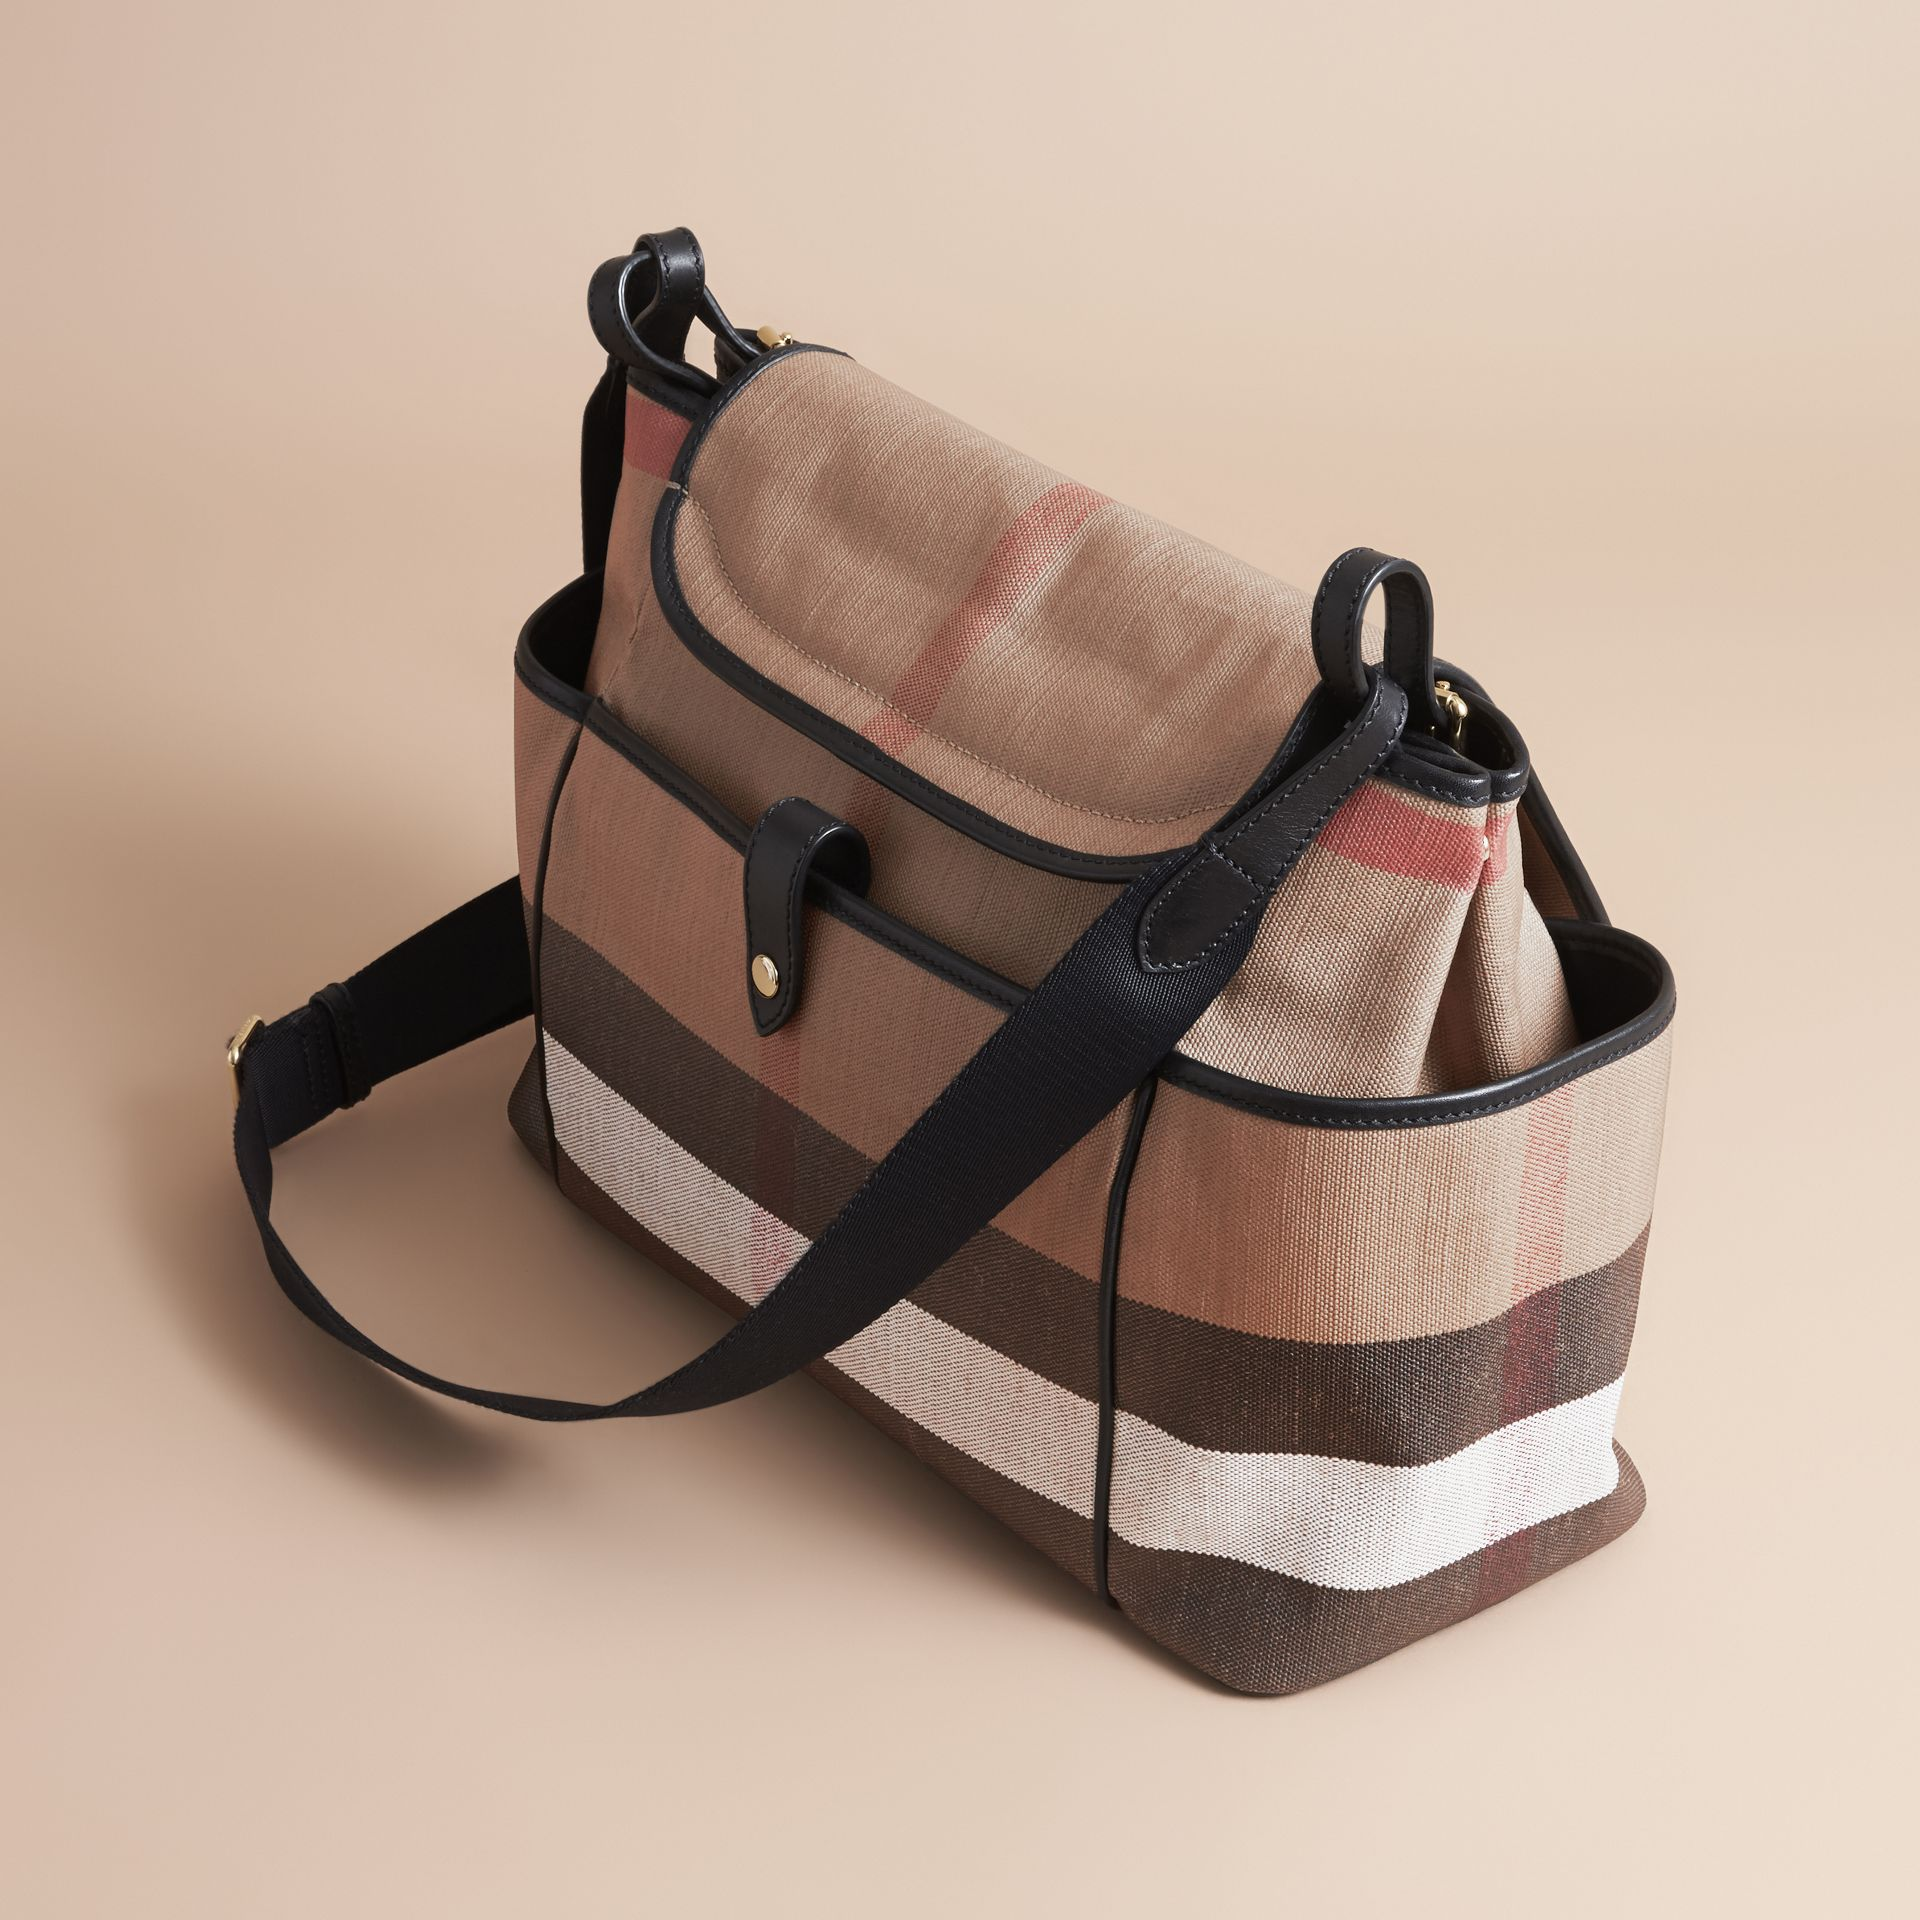 Canvas Check and Leather Baby Changing Shoulder Bag in Black | Burberry - gallery image 2